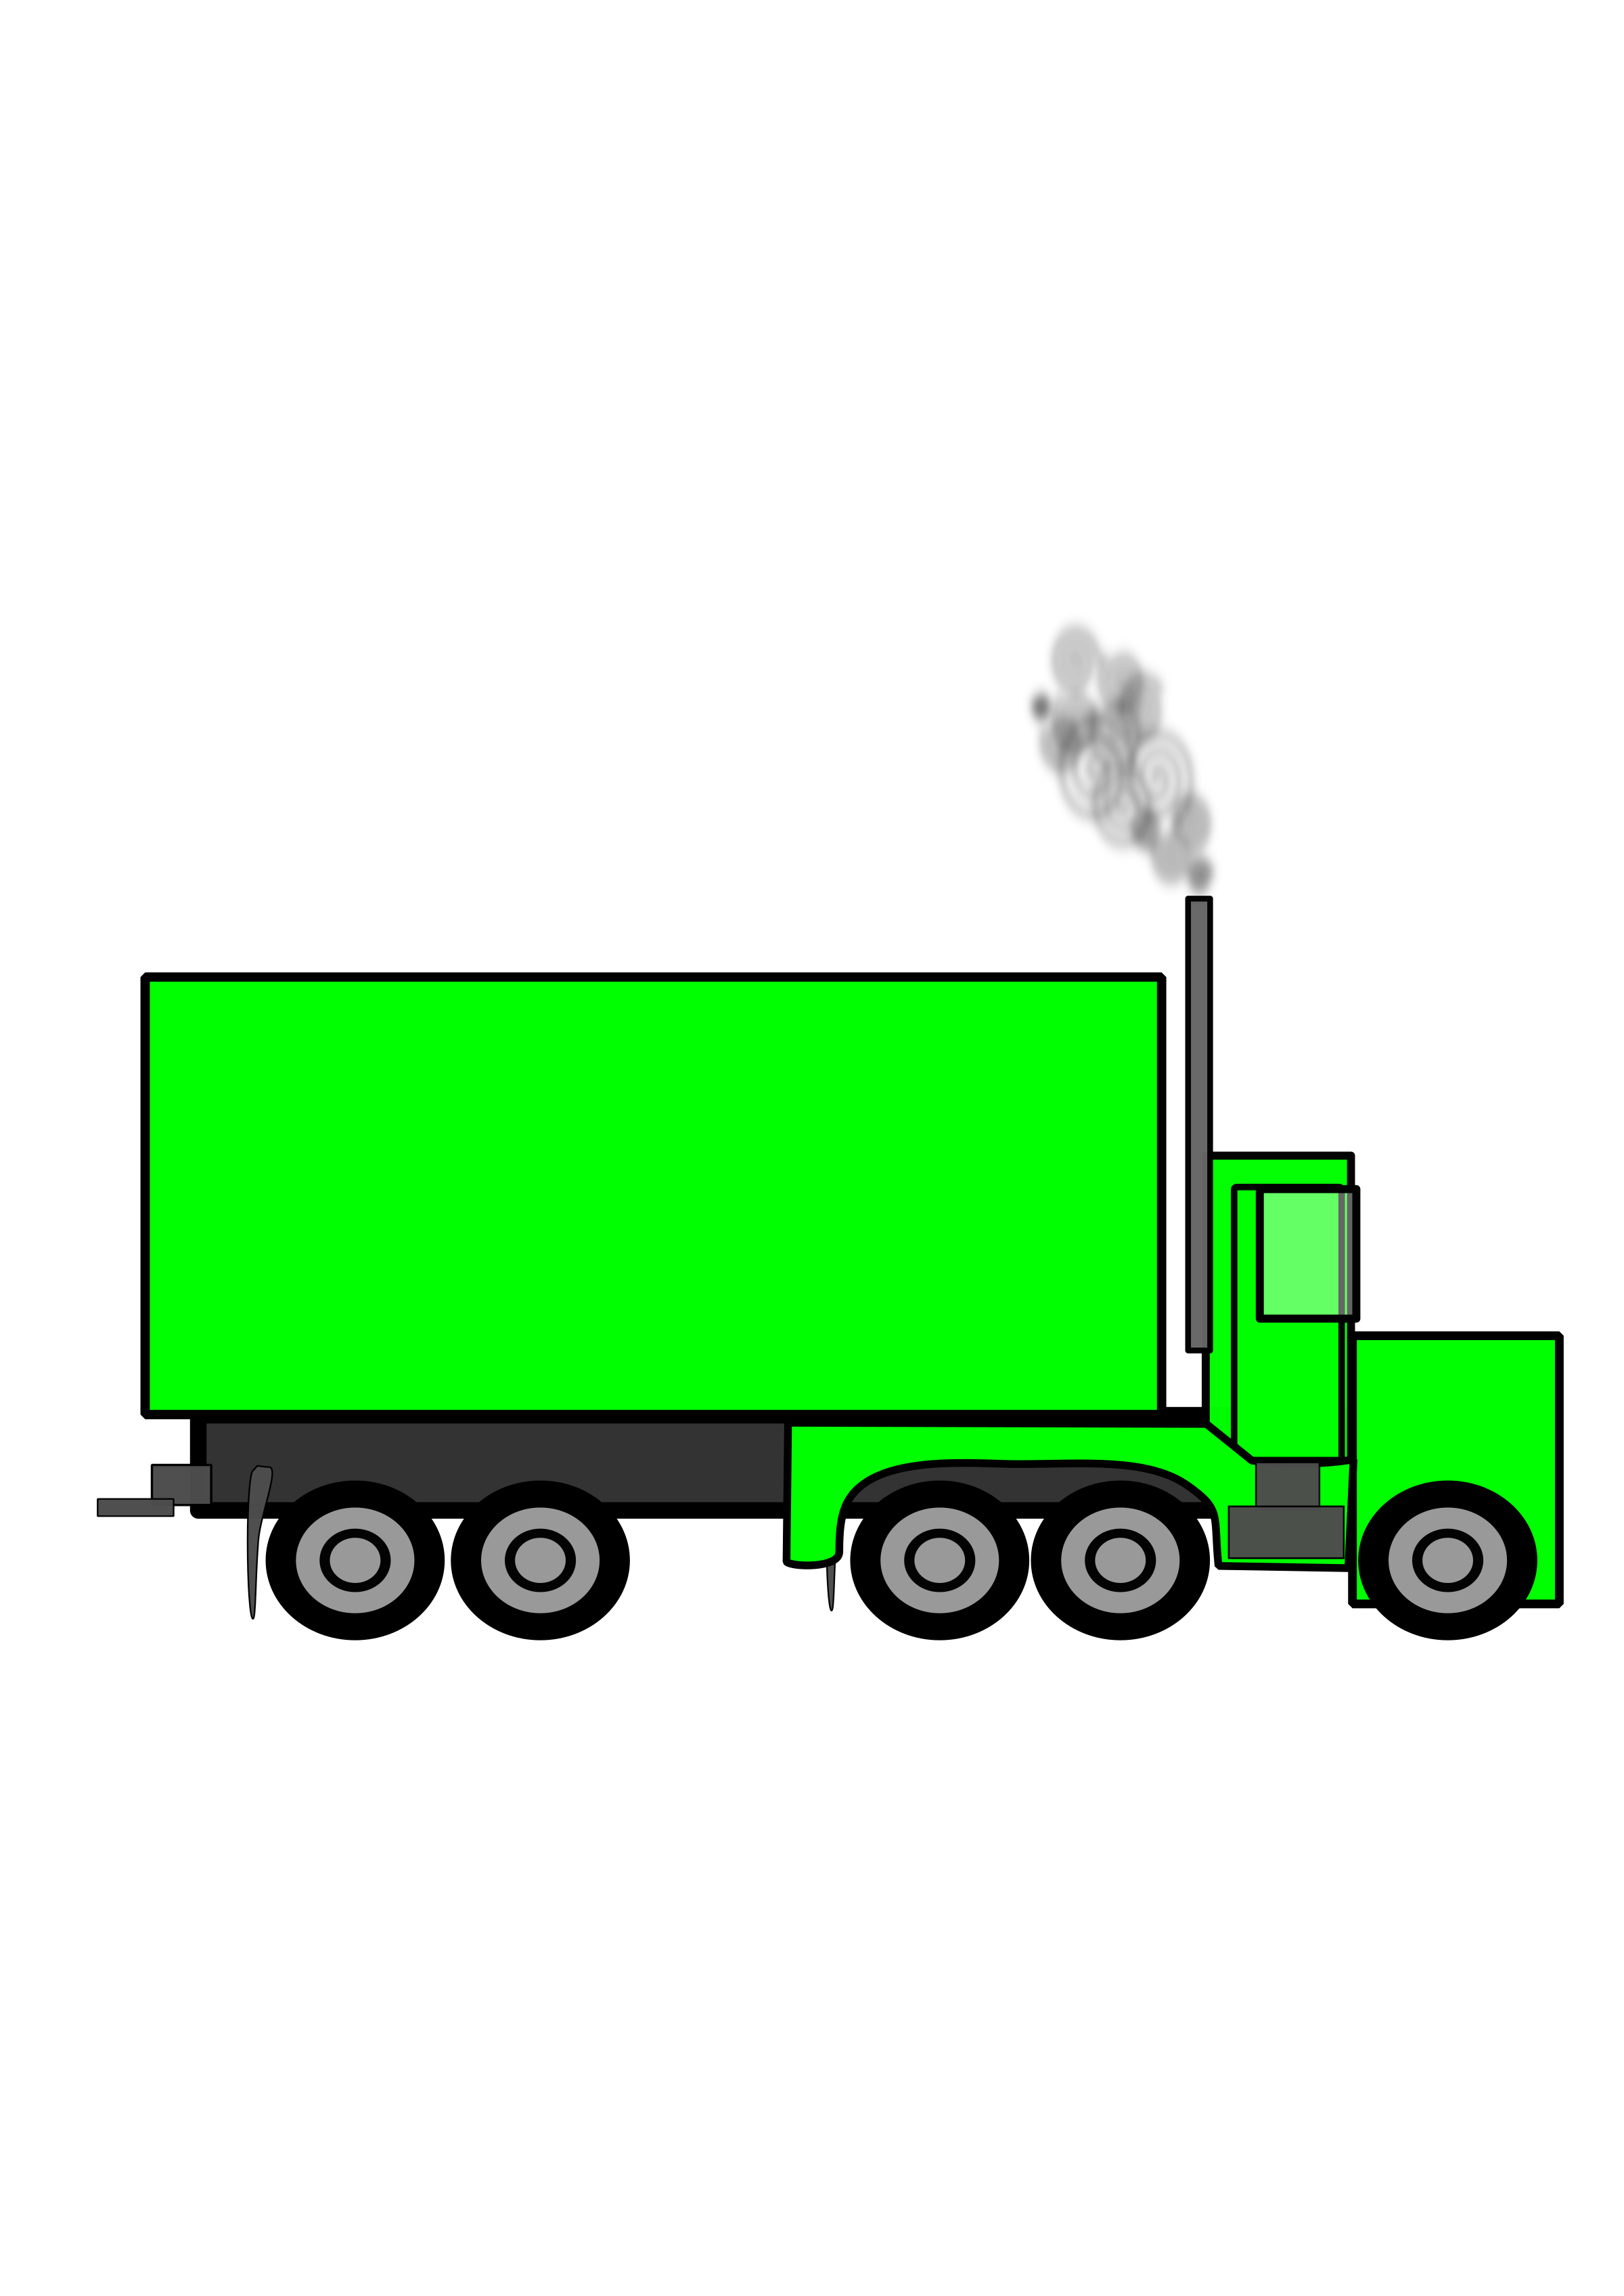 Transport drawing diesel truck. Clipart at getdrawings com